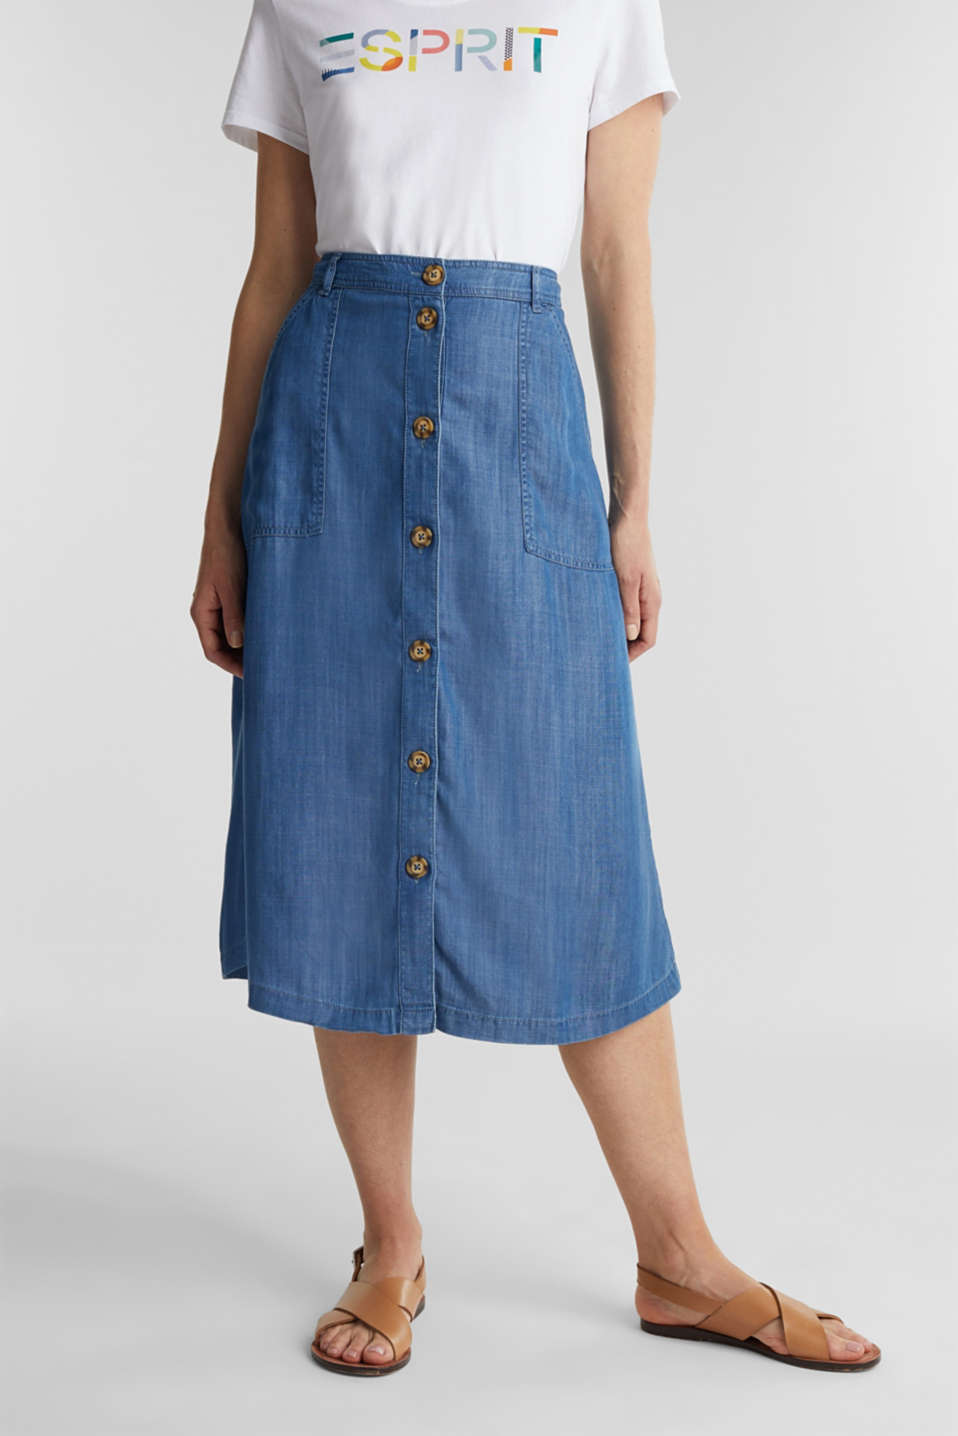 Esprit - Van TENCEL™: denim rok in A-lijn